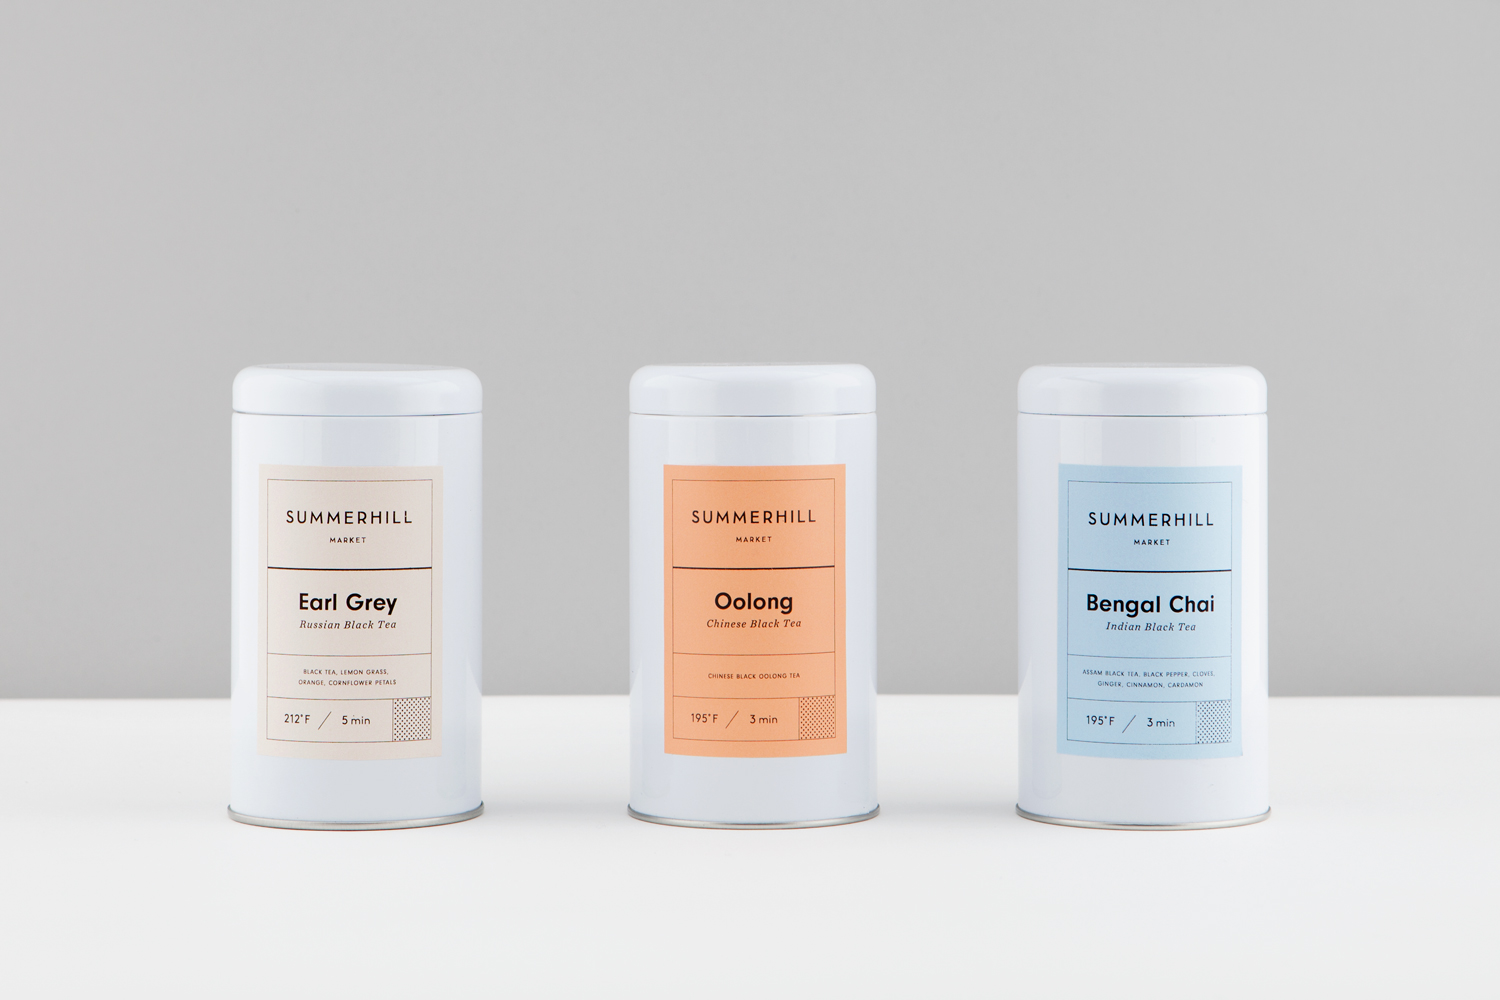 Branding and tea packaging designed by Canadian studio Blok for Toronto based boutique grocery store Summerhill Market